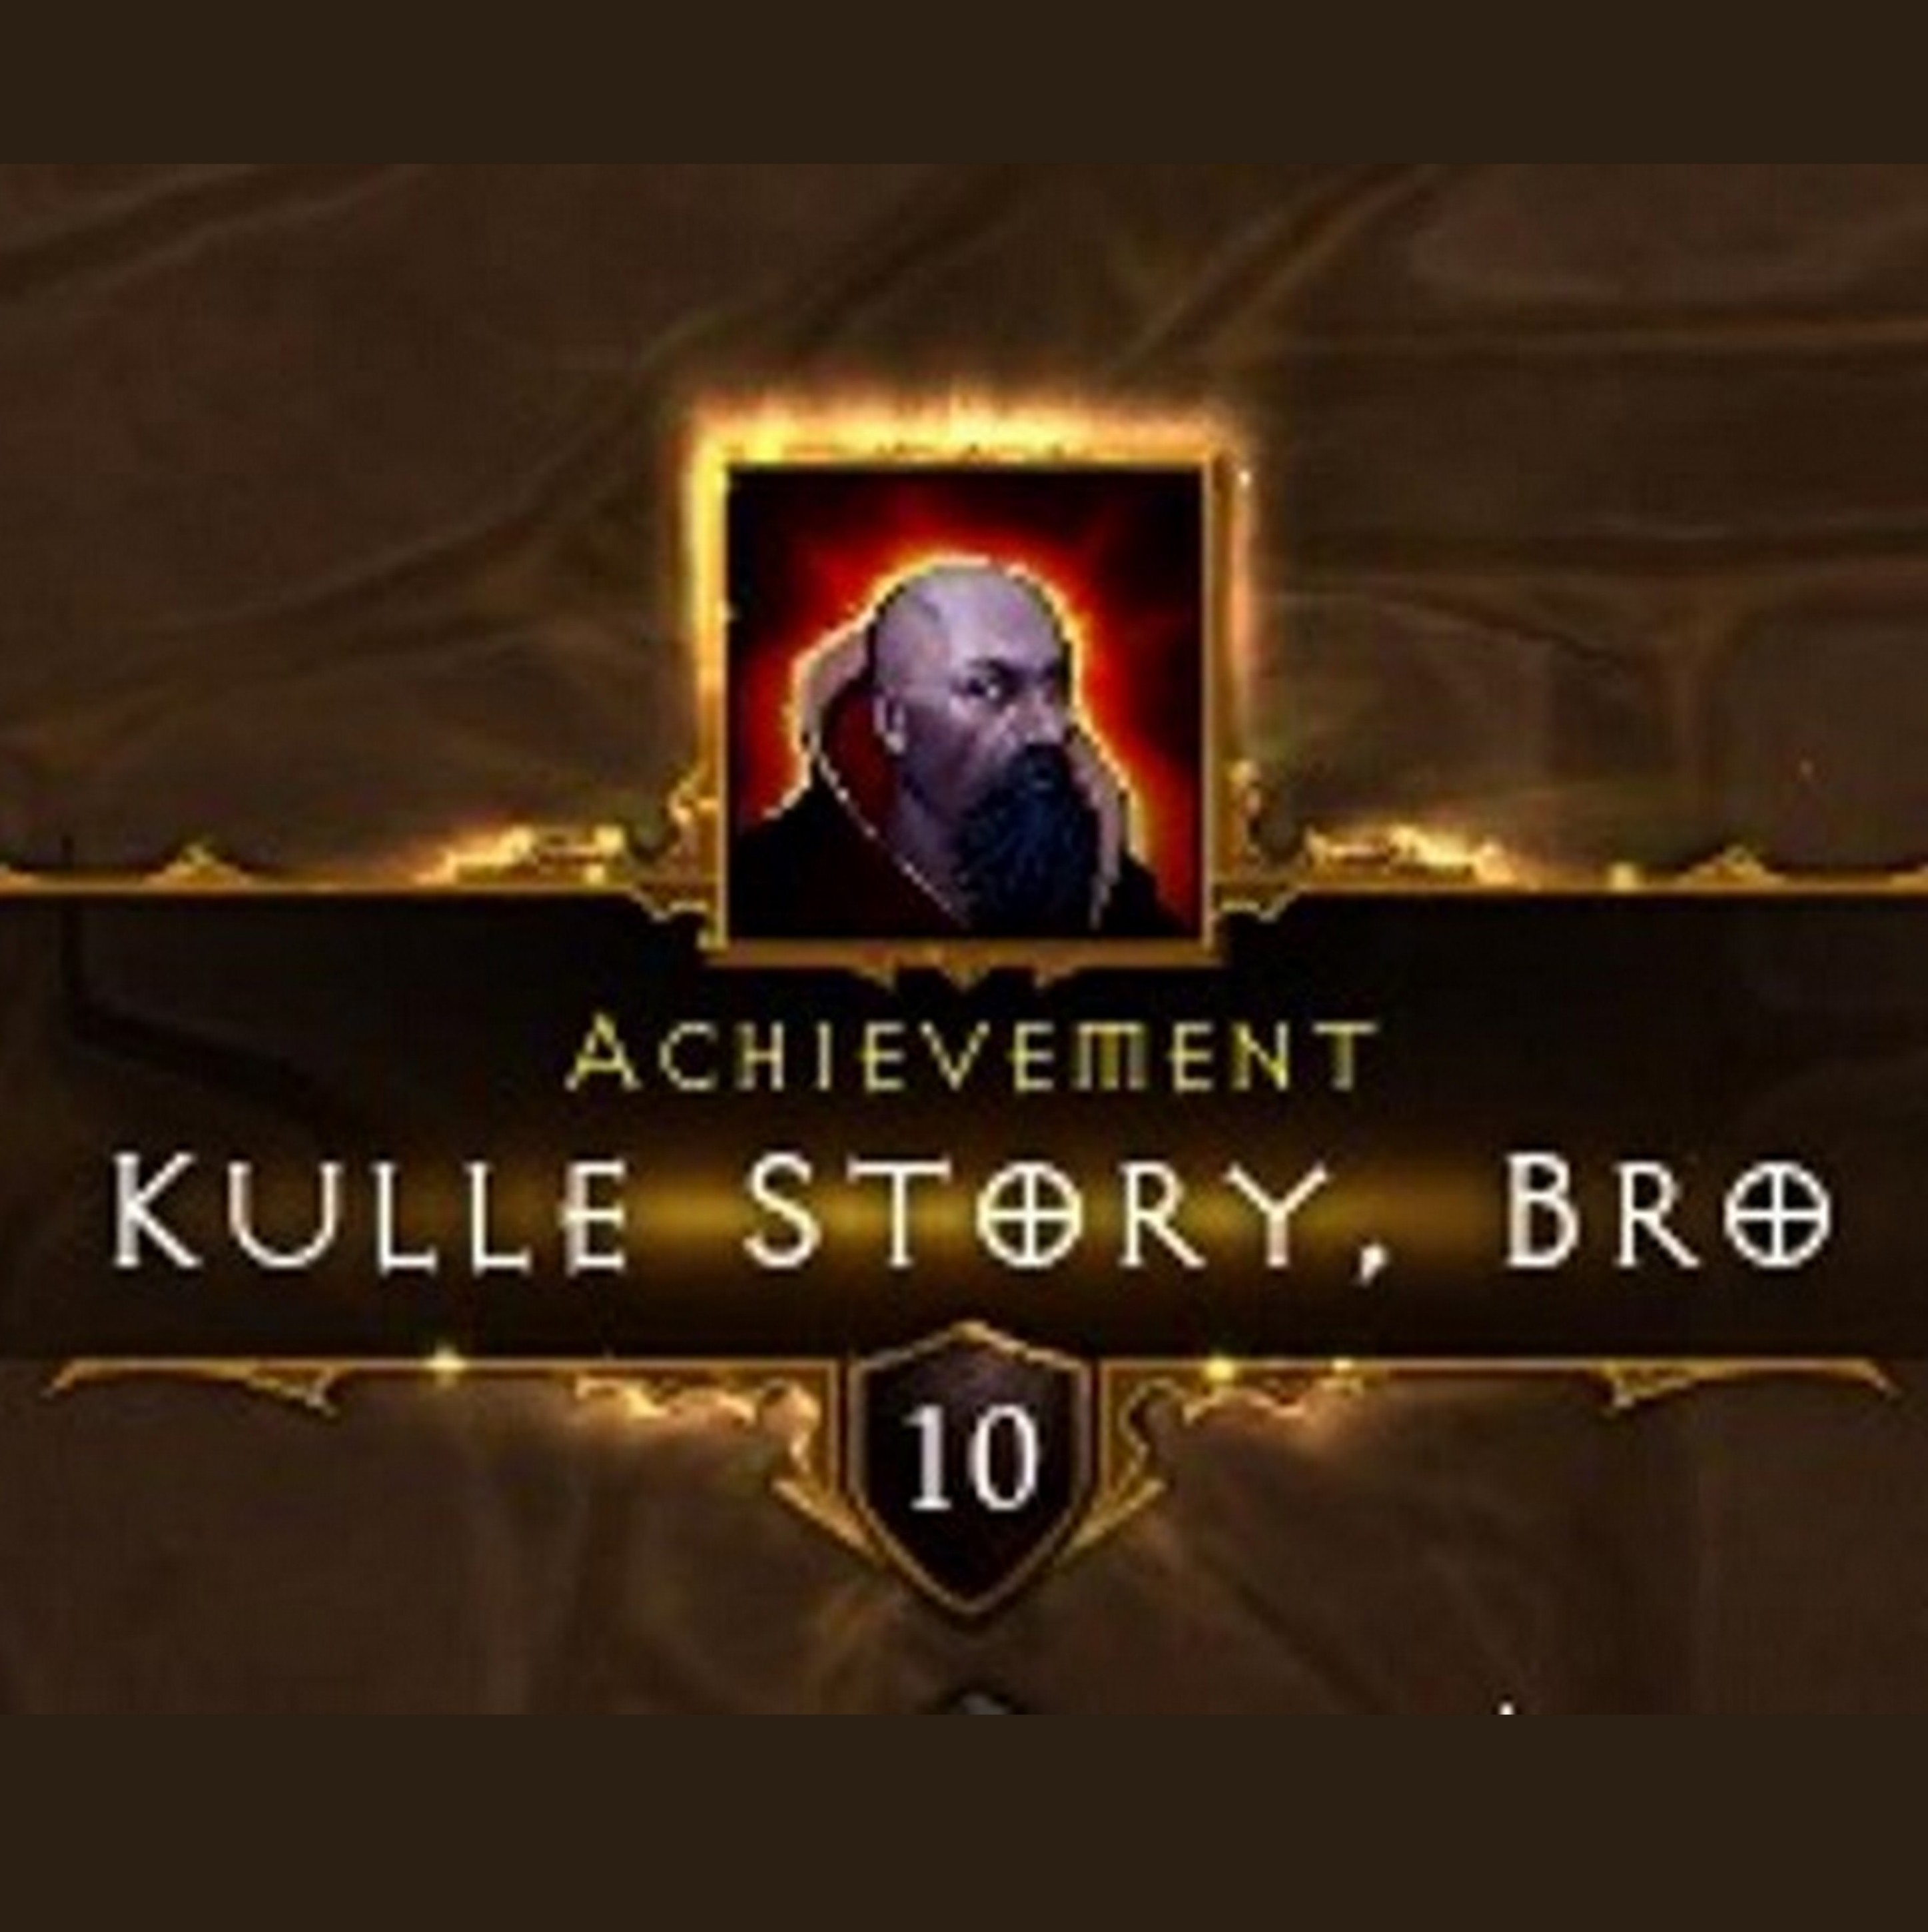 Kulle Story Bro - A Diablo 3 Podcast Episode 21